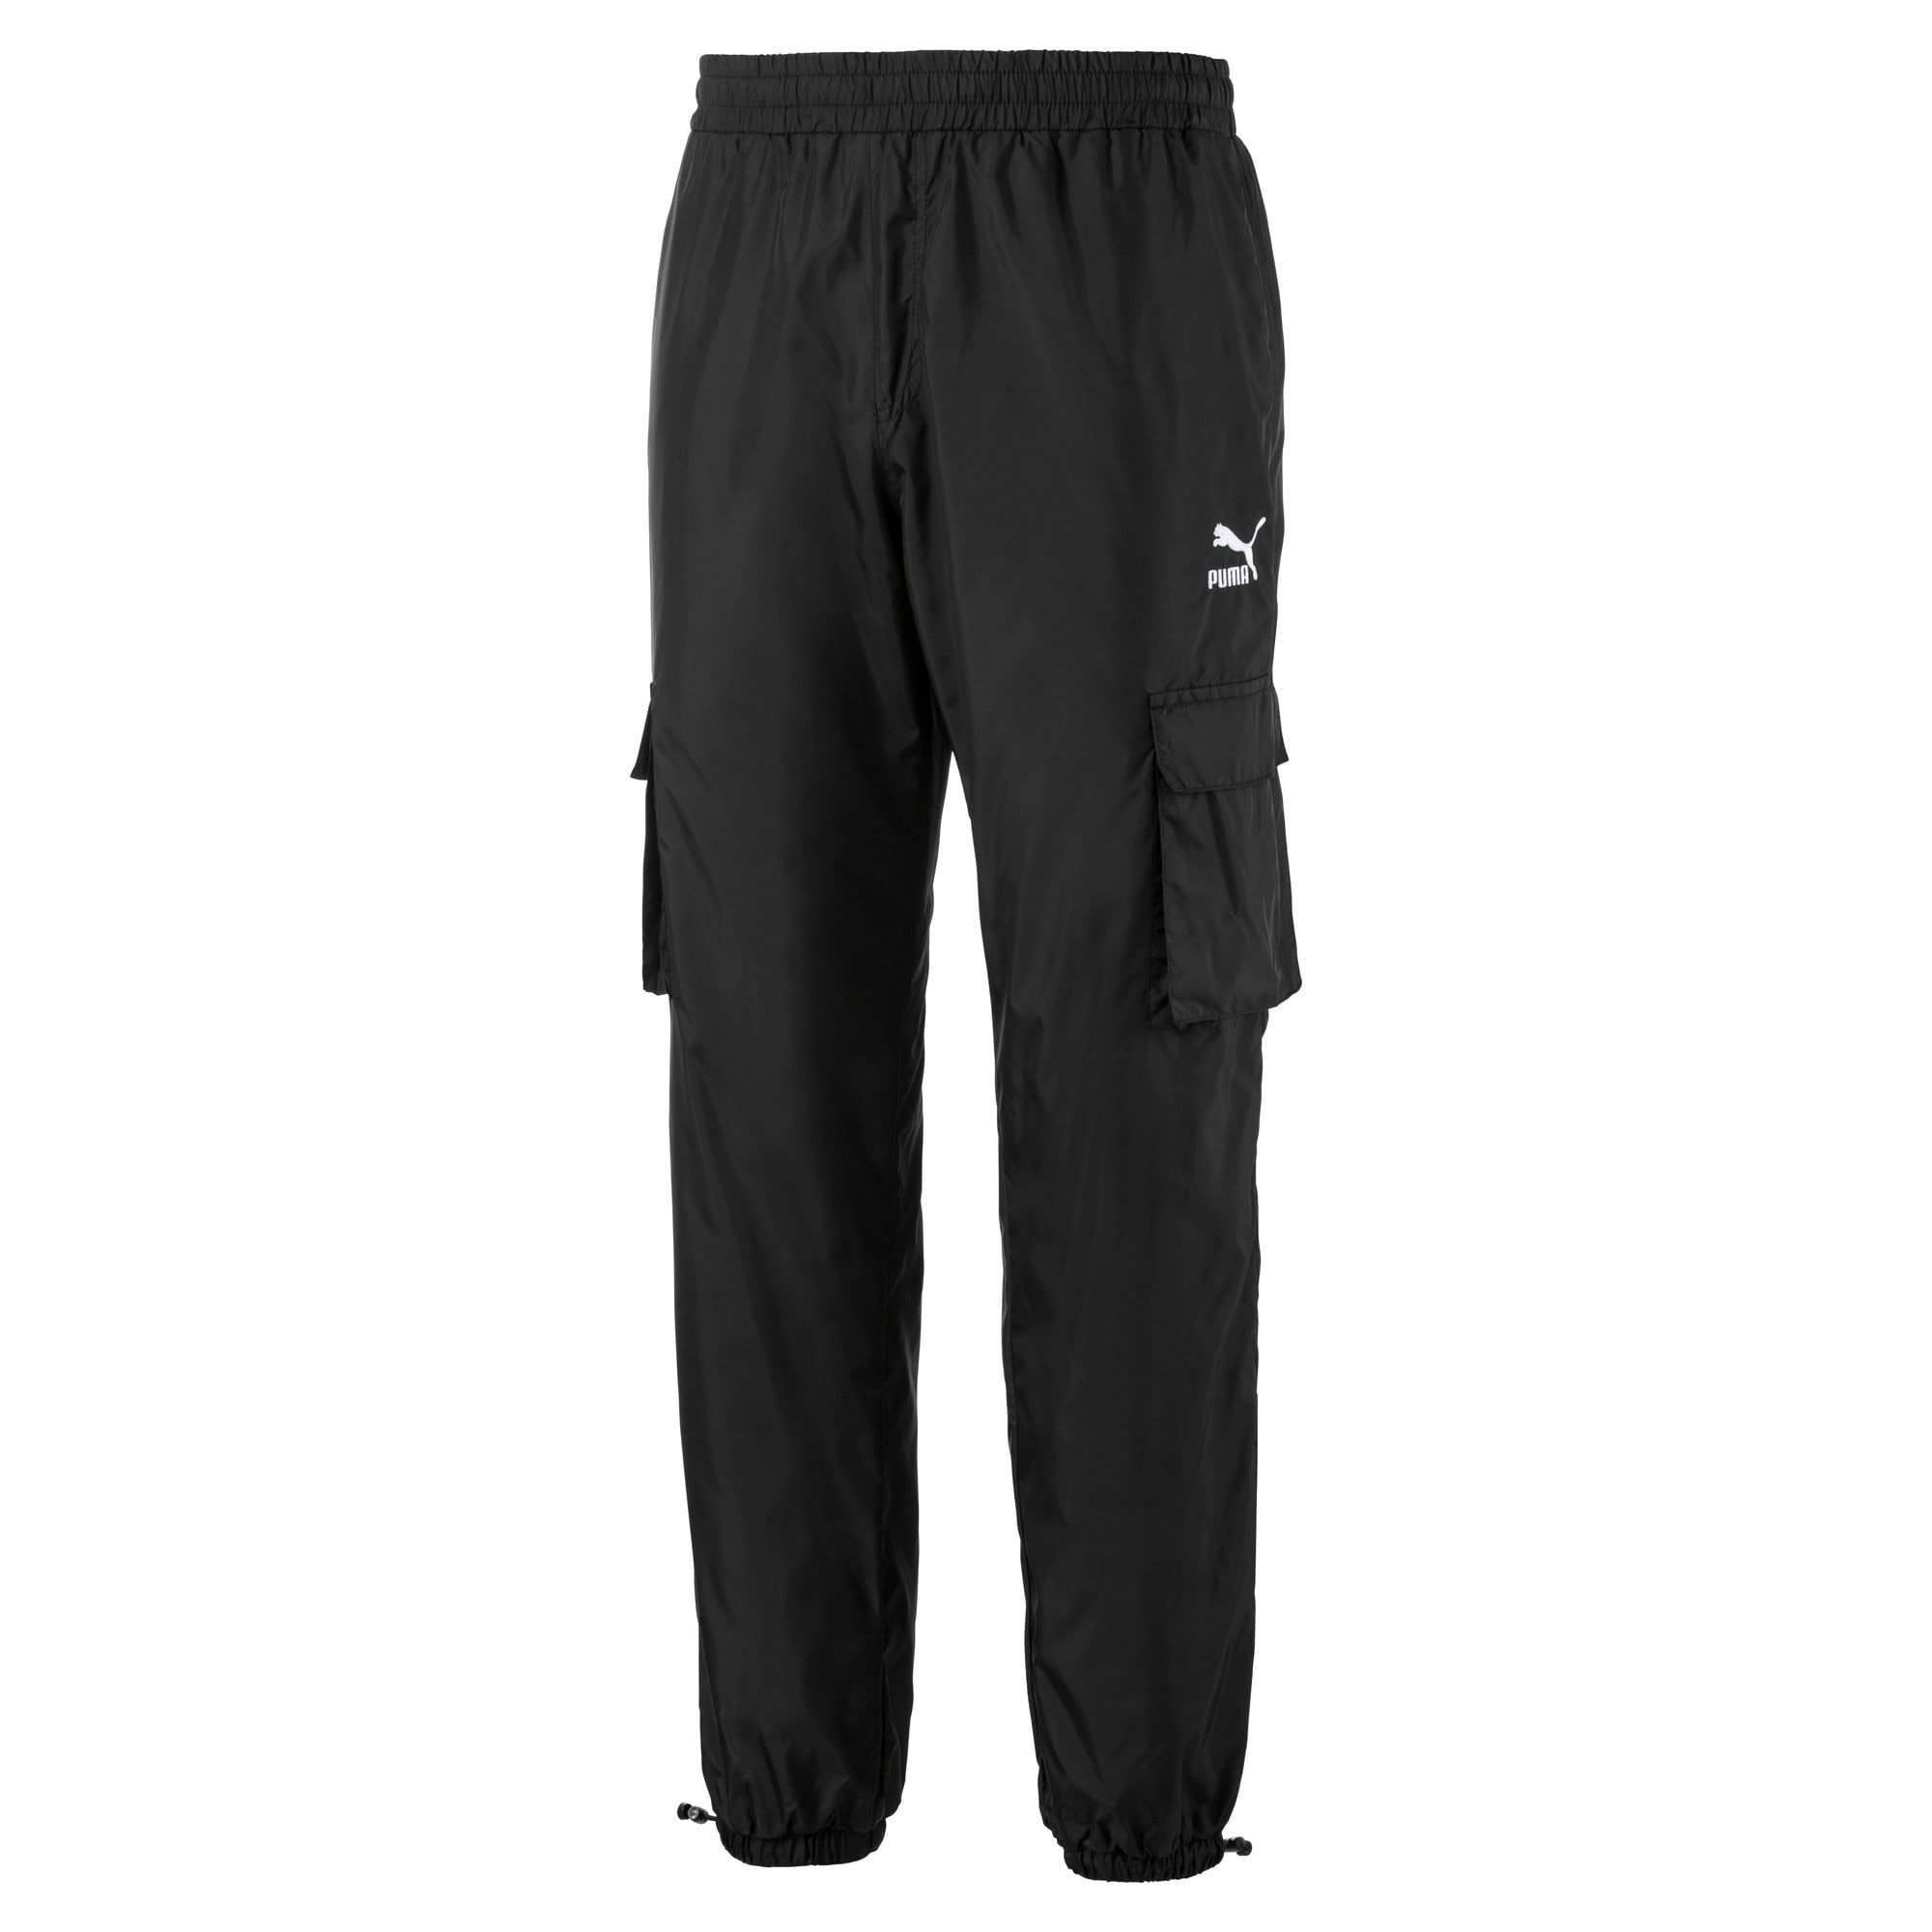 Thumbnail 1 of Lightweight Woven Men's Pants, Puma Black, medium